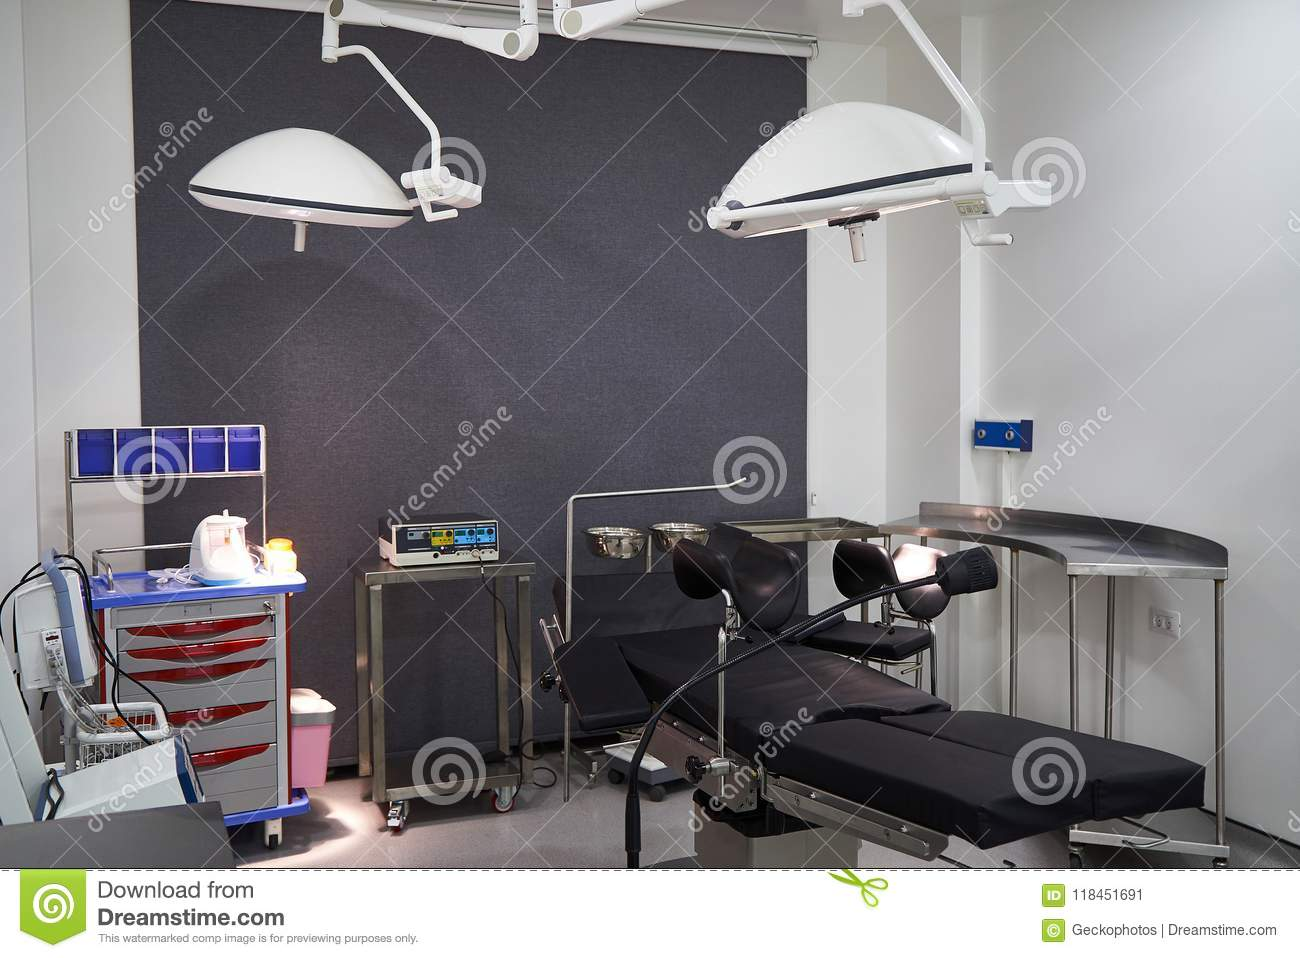 Hospital Room Interior With Beds Stock Image Image Of Equipped